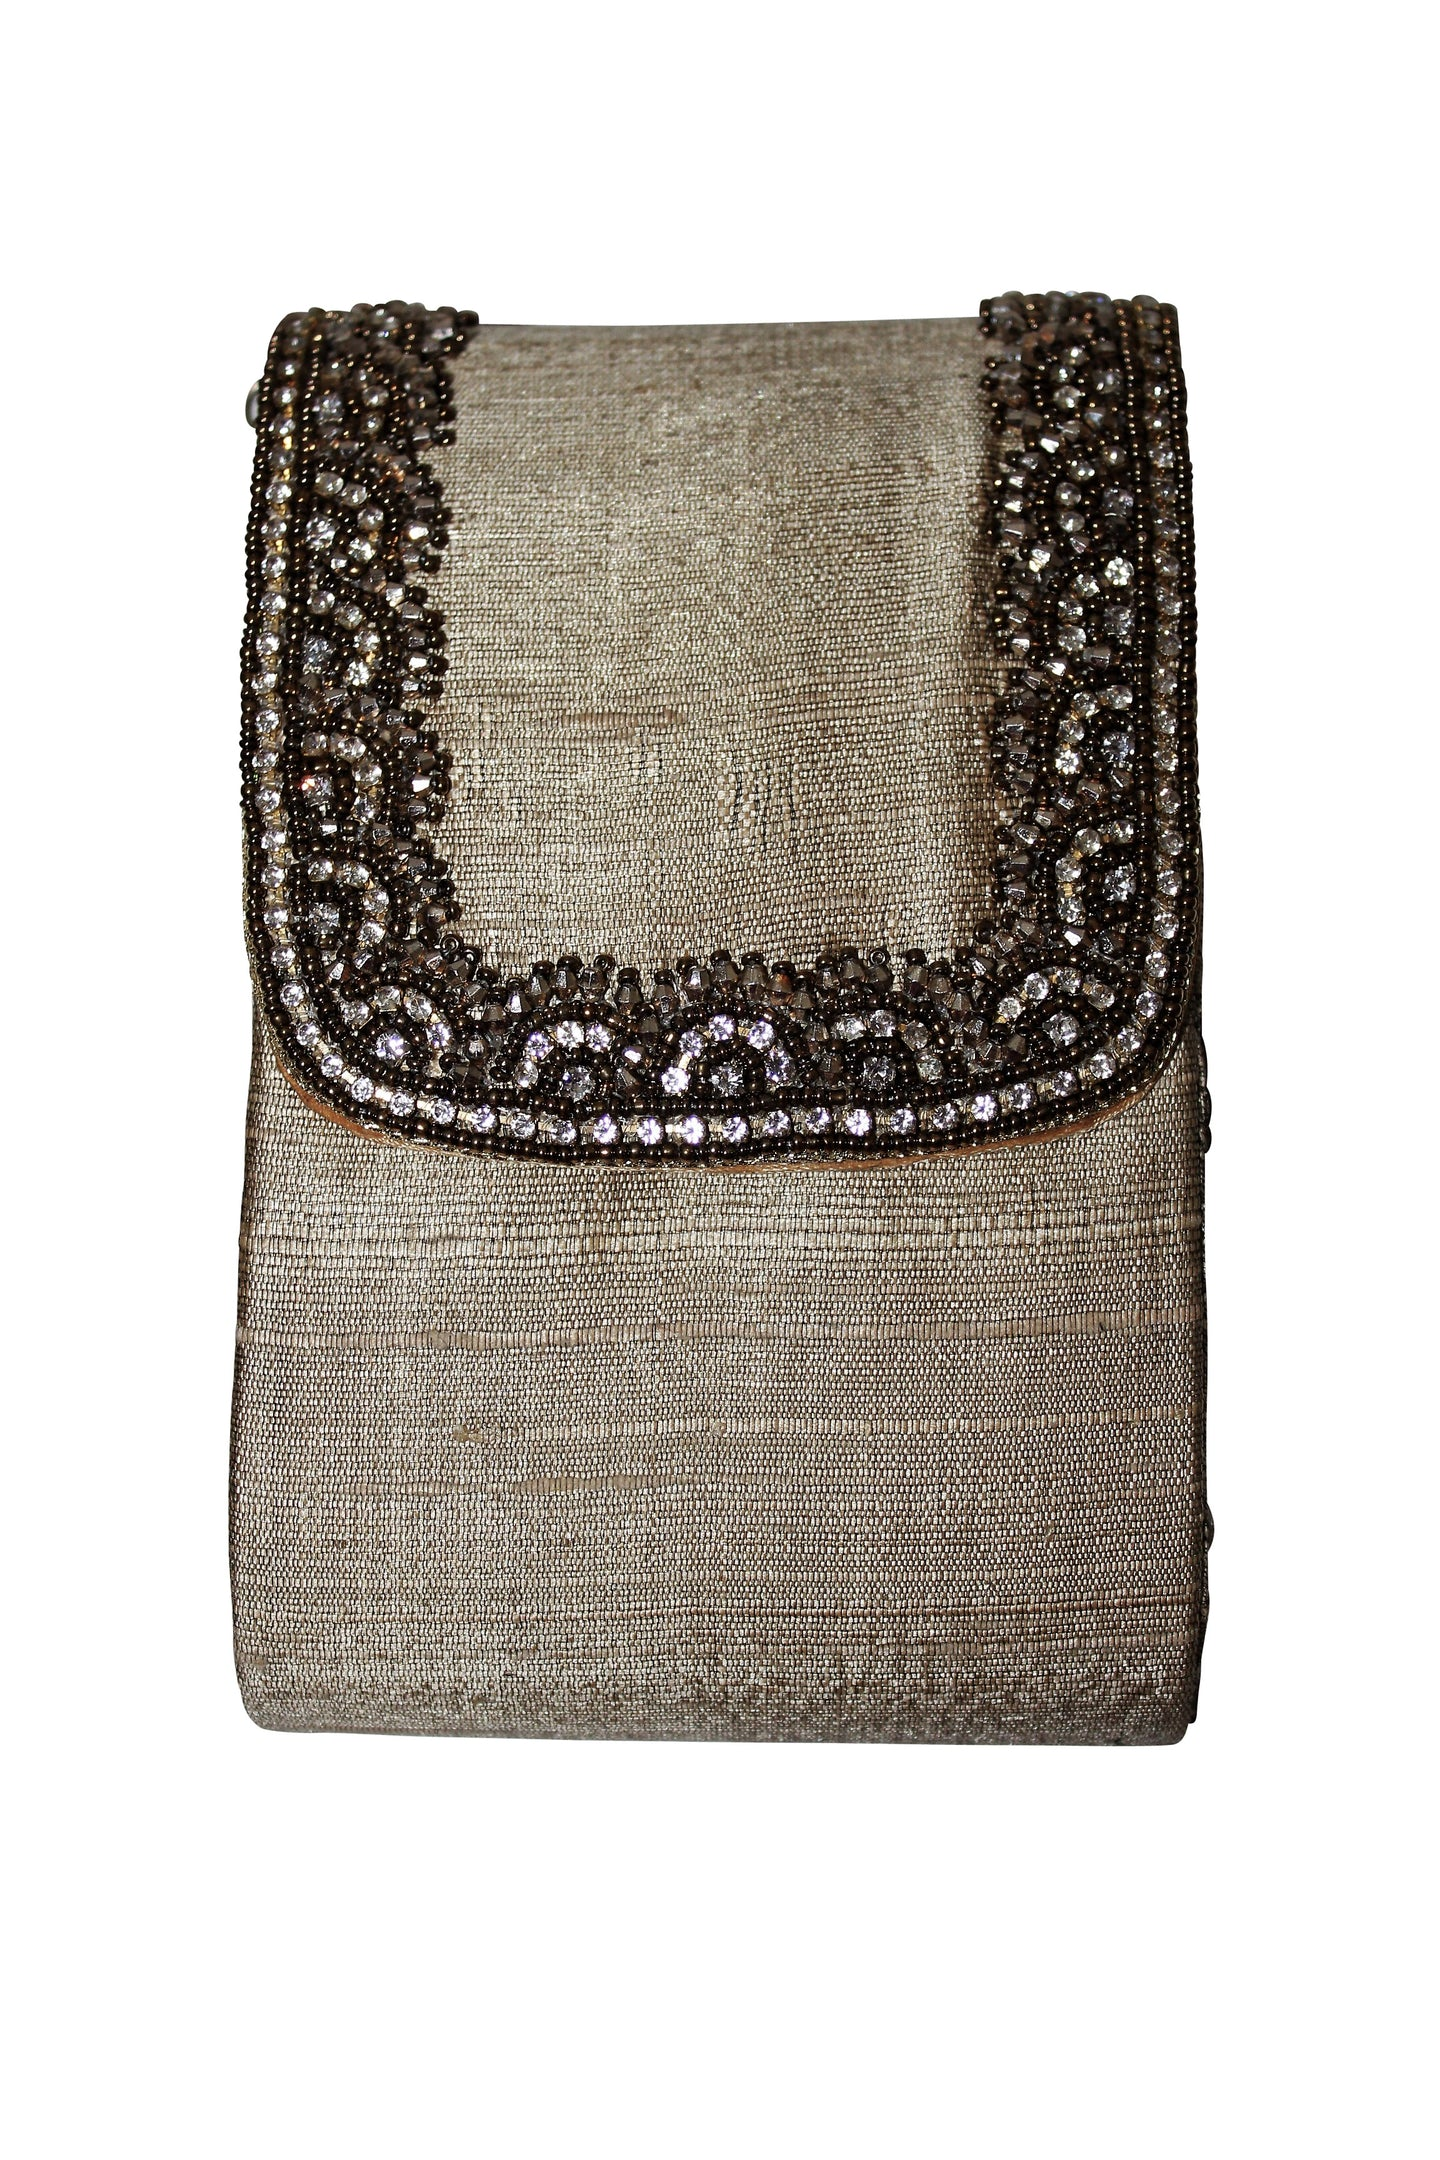 deidaa beige silk beaded clutch purse small